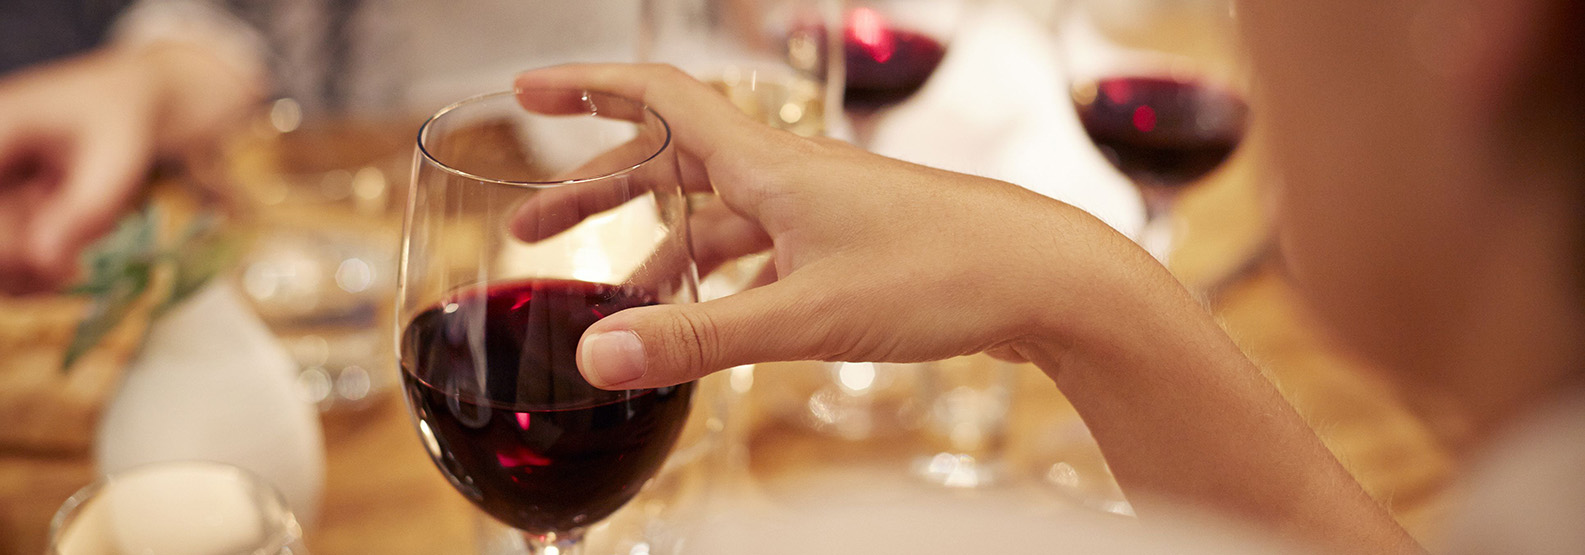 close-up-of-female-holding-glass-with-redwine-498071509-577d5a0b5f9b585875fa4840